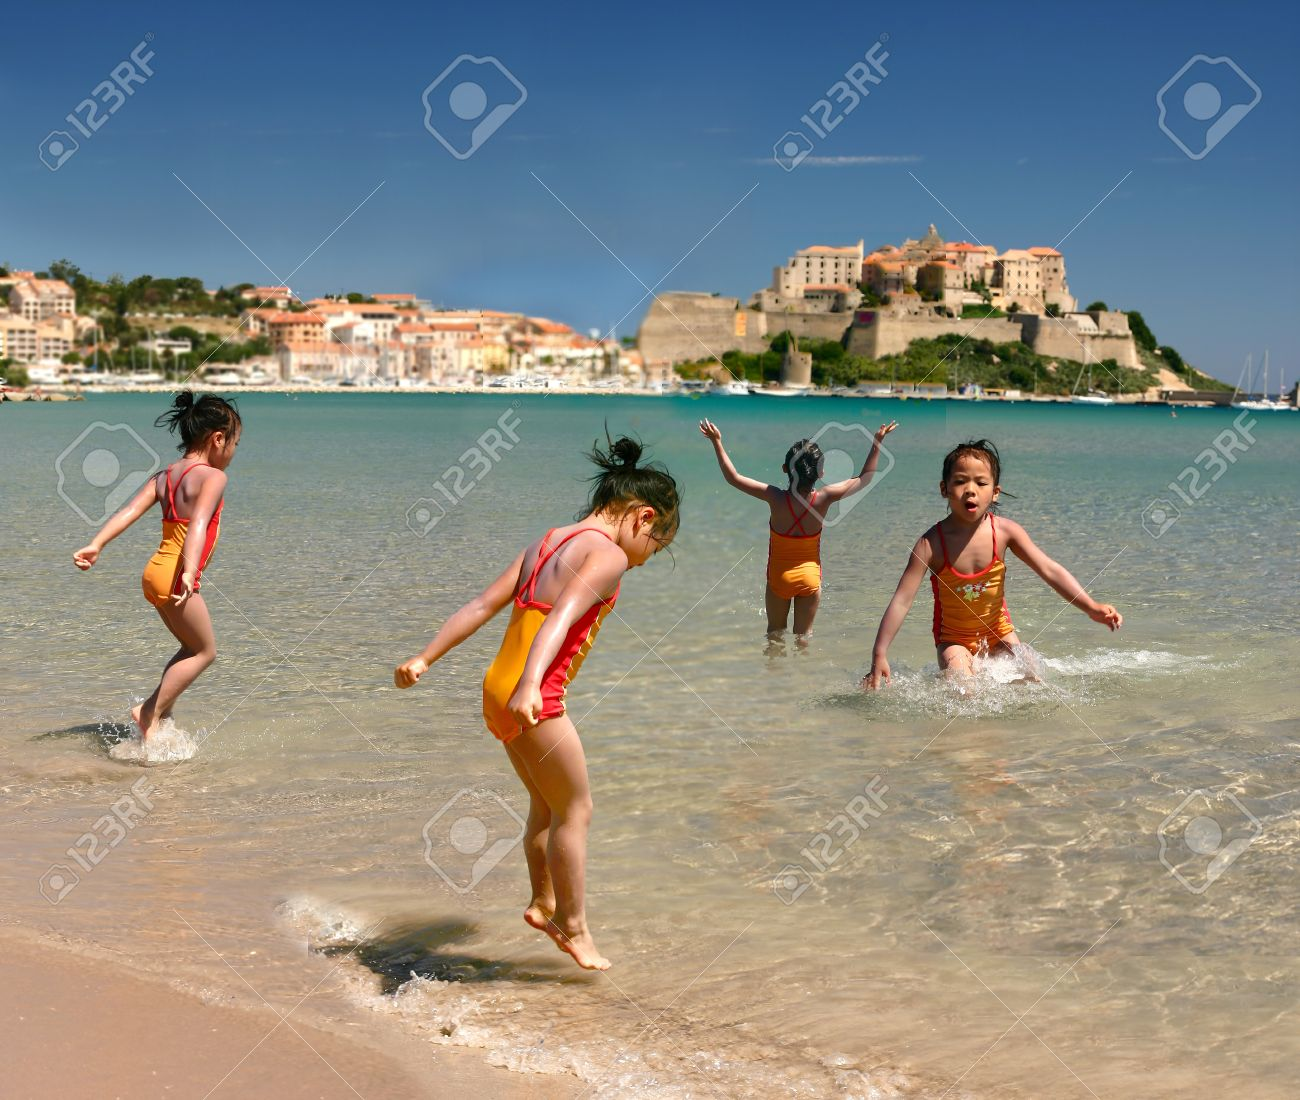 beach with people. people at the beach in corsica france stock photo 12616885 with